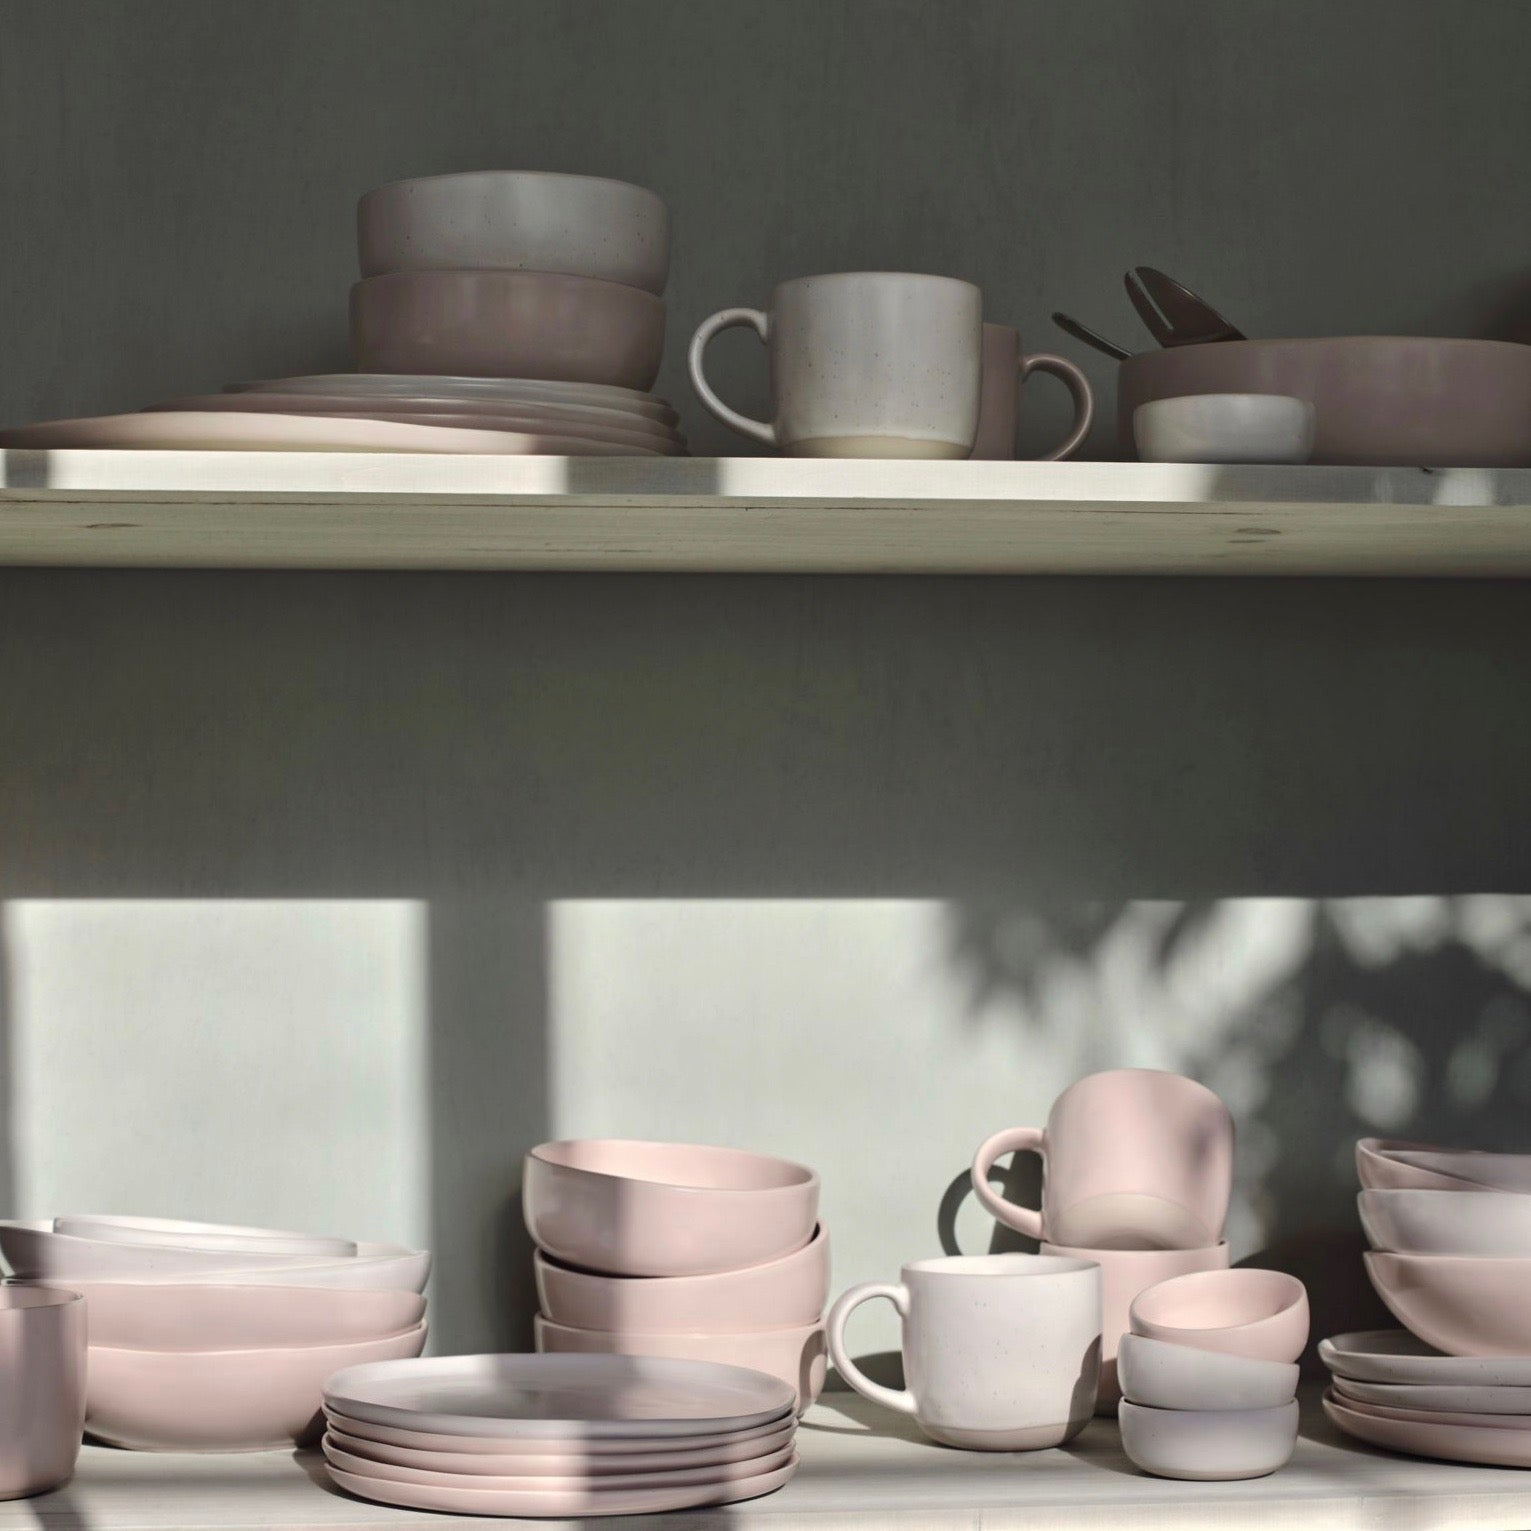 A shelf full of blush pink and speckled white dinnerware from Fable.